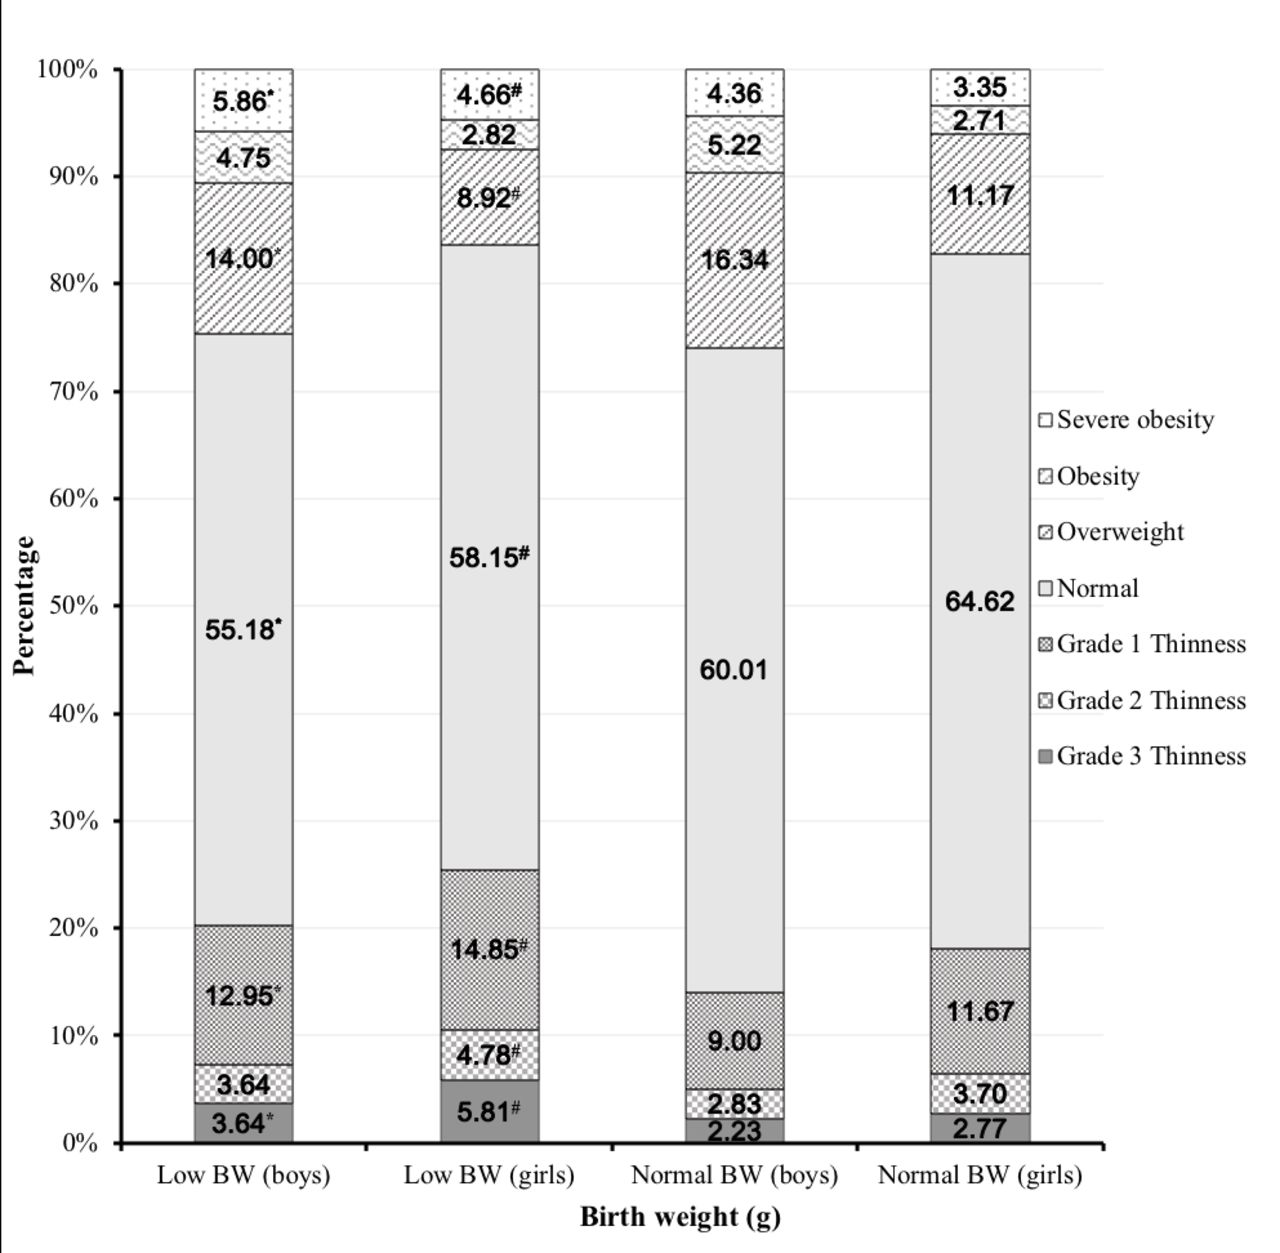 Association of low birth weight with thinness and severe